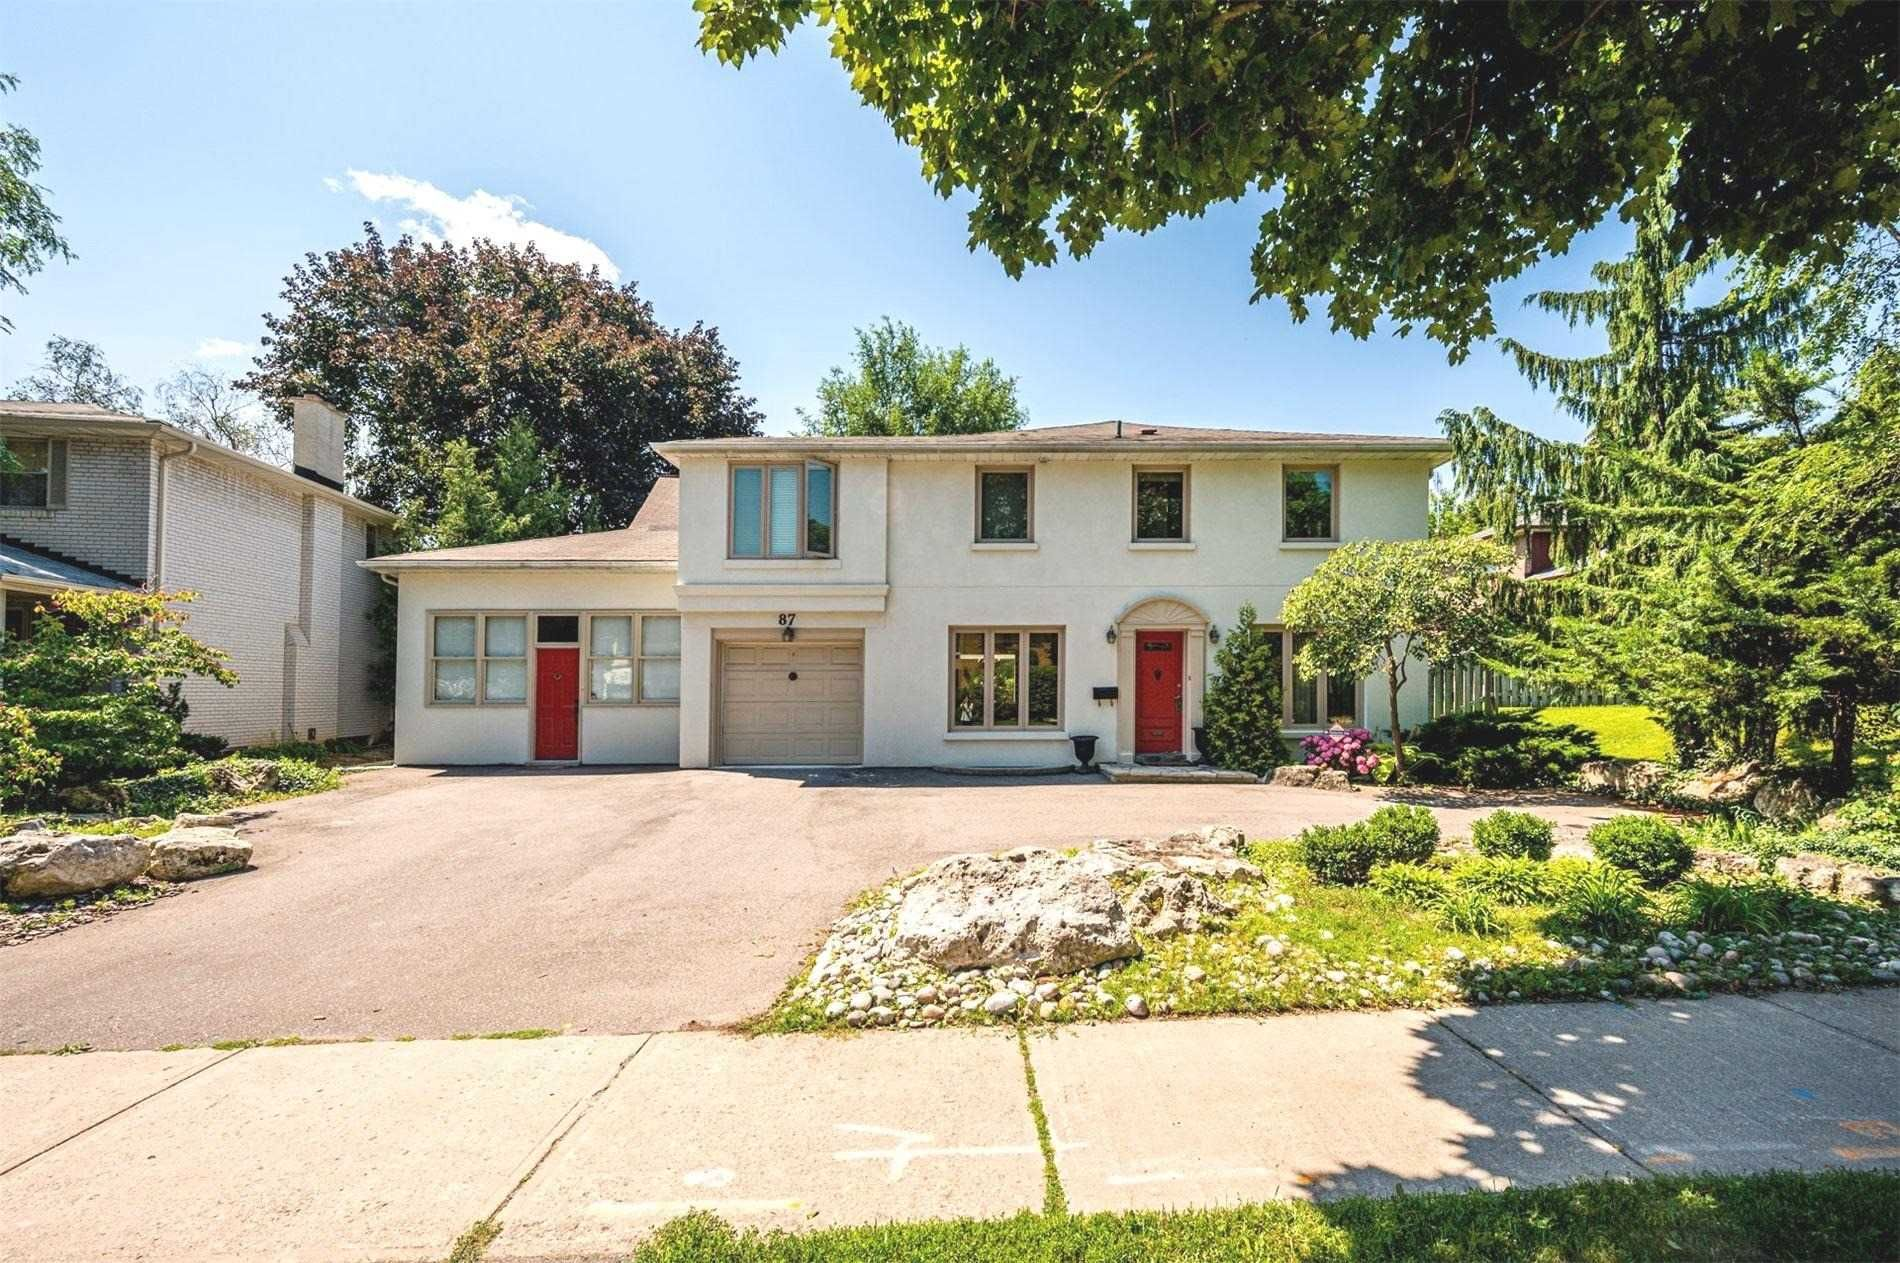 Main Photo: 87 Lord Seaton Road in Toronto: St. Andrew-Windfields House (2-Storey) for sale (Toronto C12)  : MLS®# C5318771